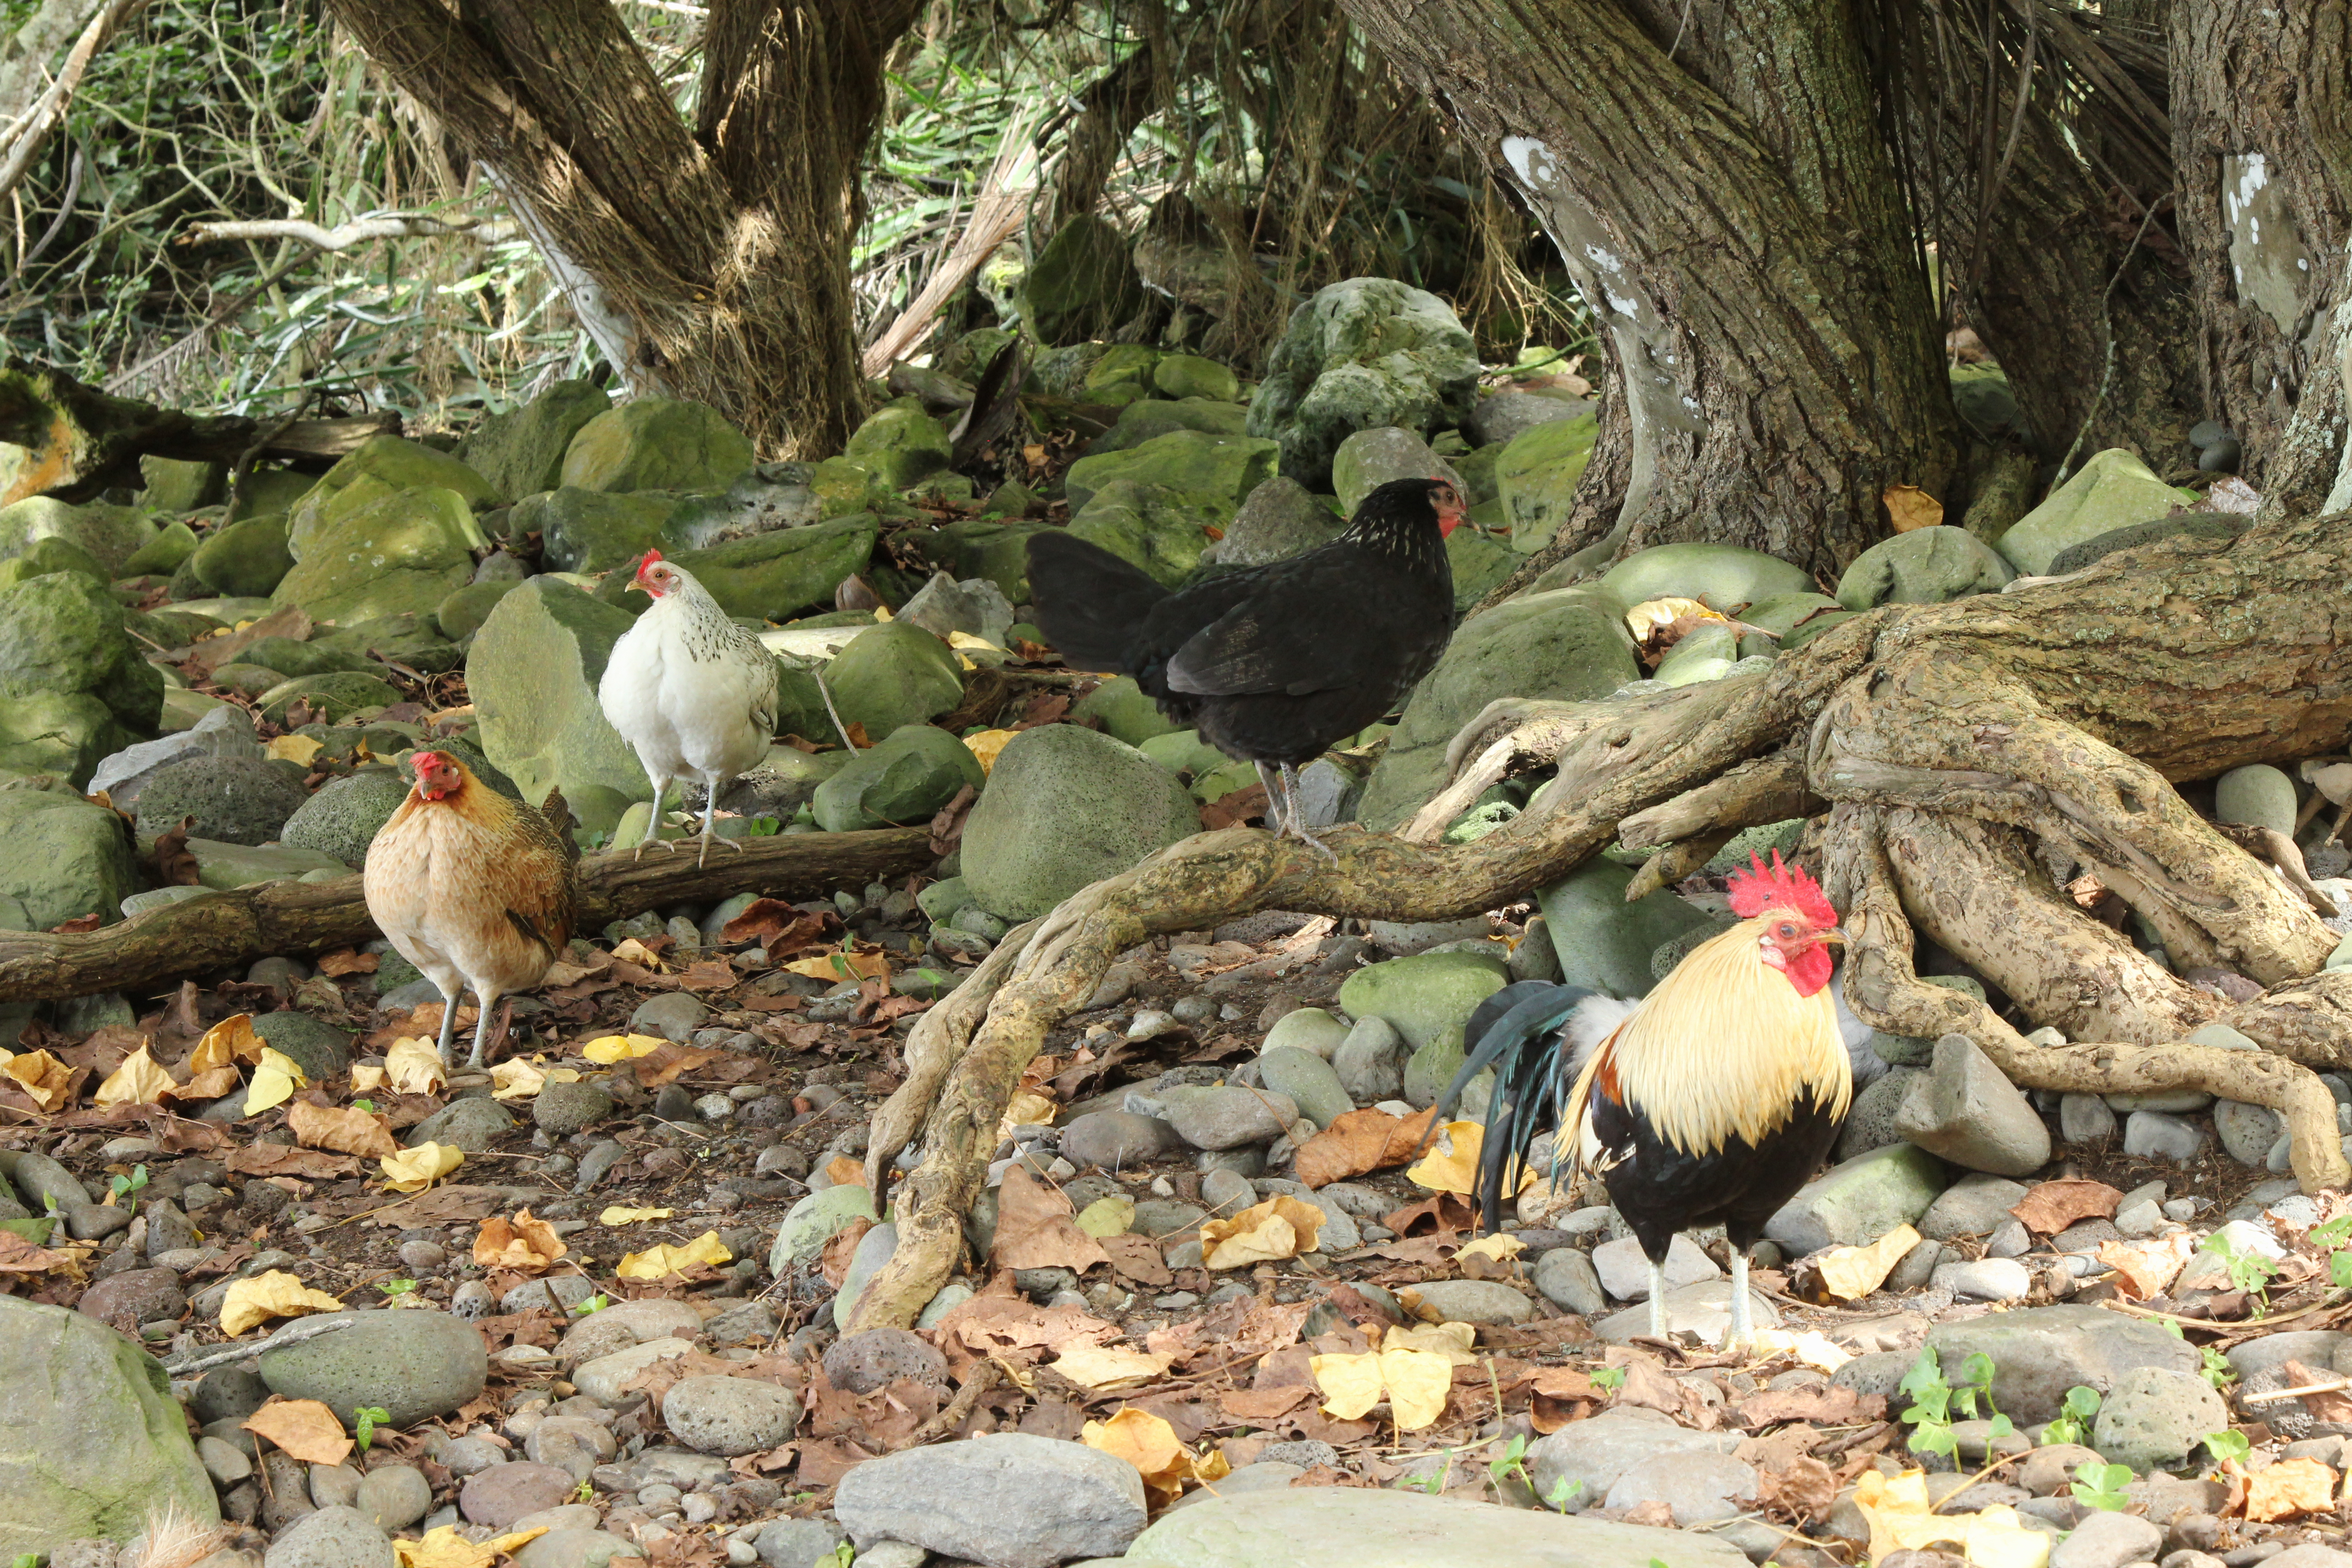 A recent picture of chicken wandering along delightful forest beach on Maui; eating their way through any native invertebrate they can grub up. Domestic birds have also brought alien forms of avian malaria to the islands pushing some Hawaiian birds to extinction.